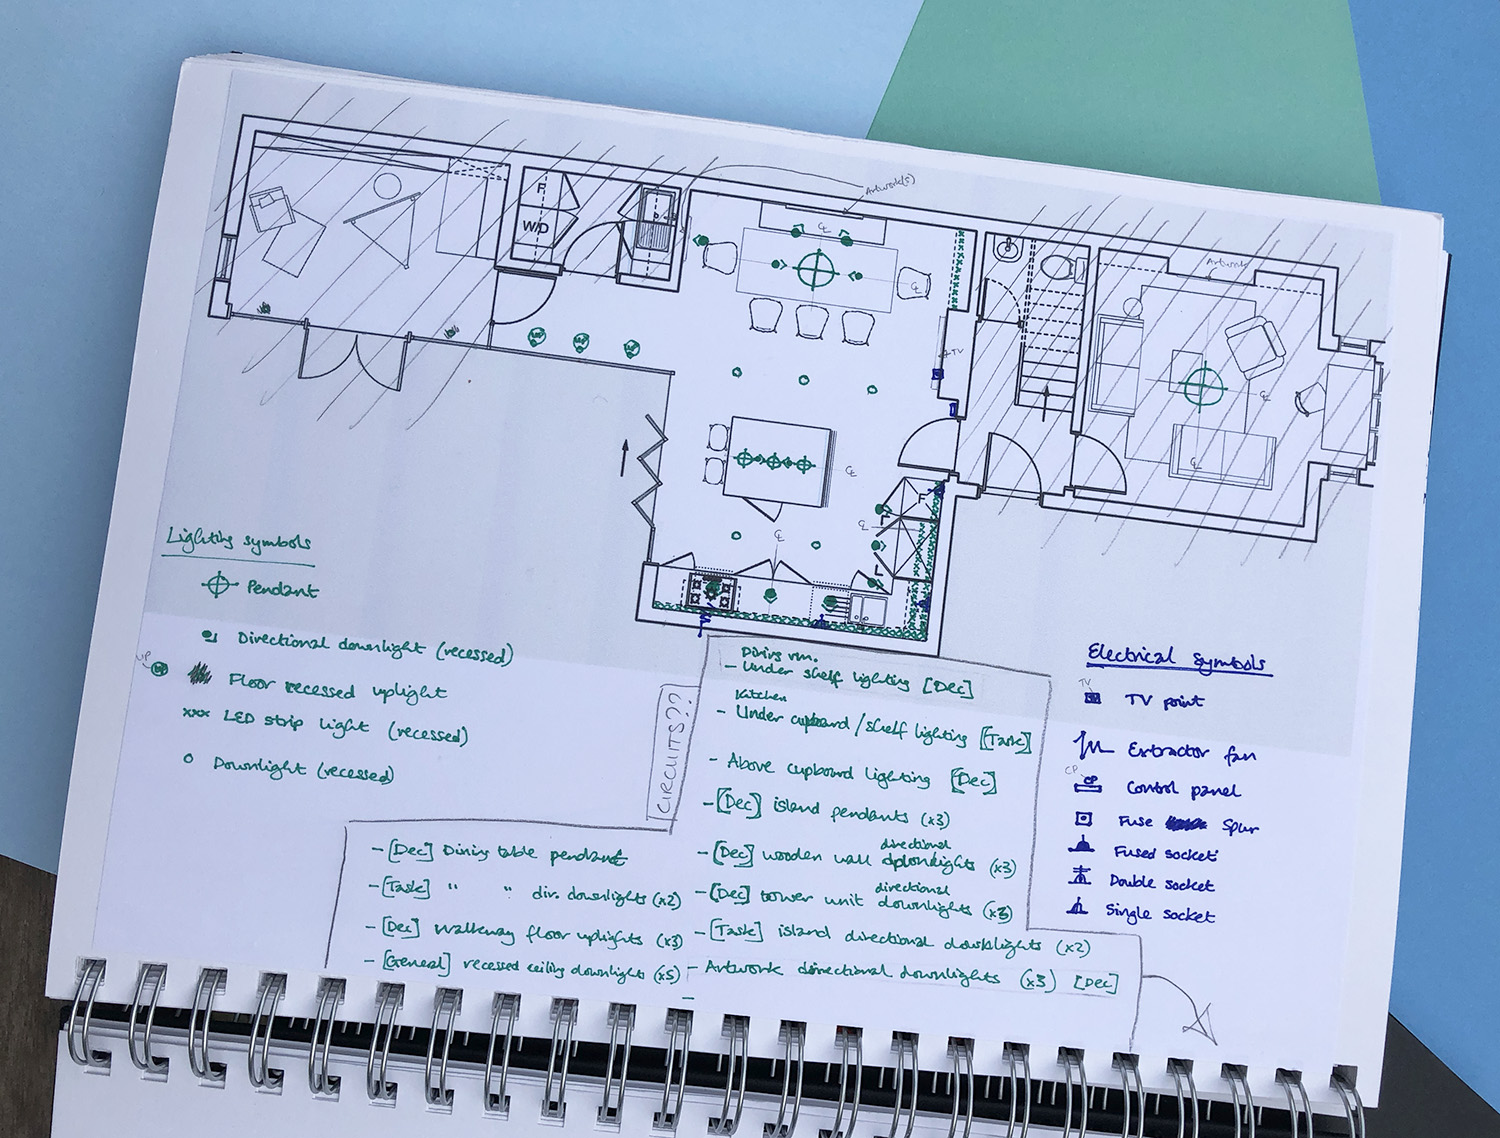 Technical drawing, lighting and electrical plan